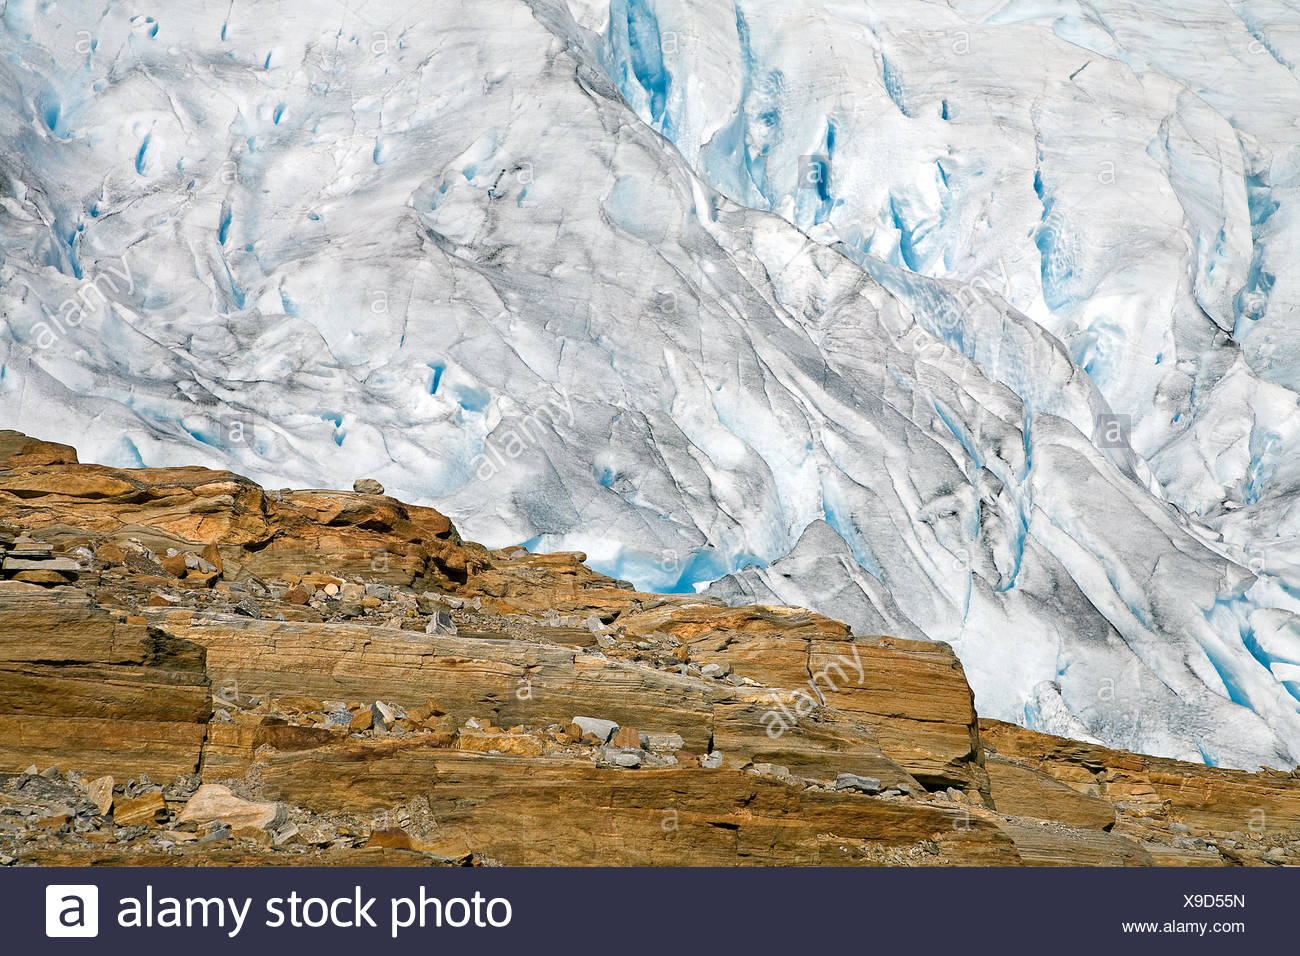 Ice Age Stock Photos & Ice Age Stock Images - Alamy